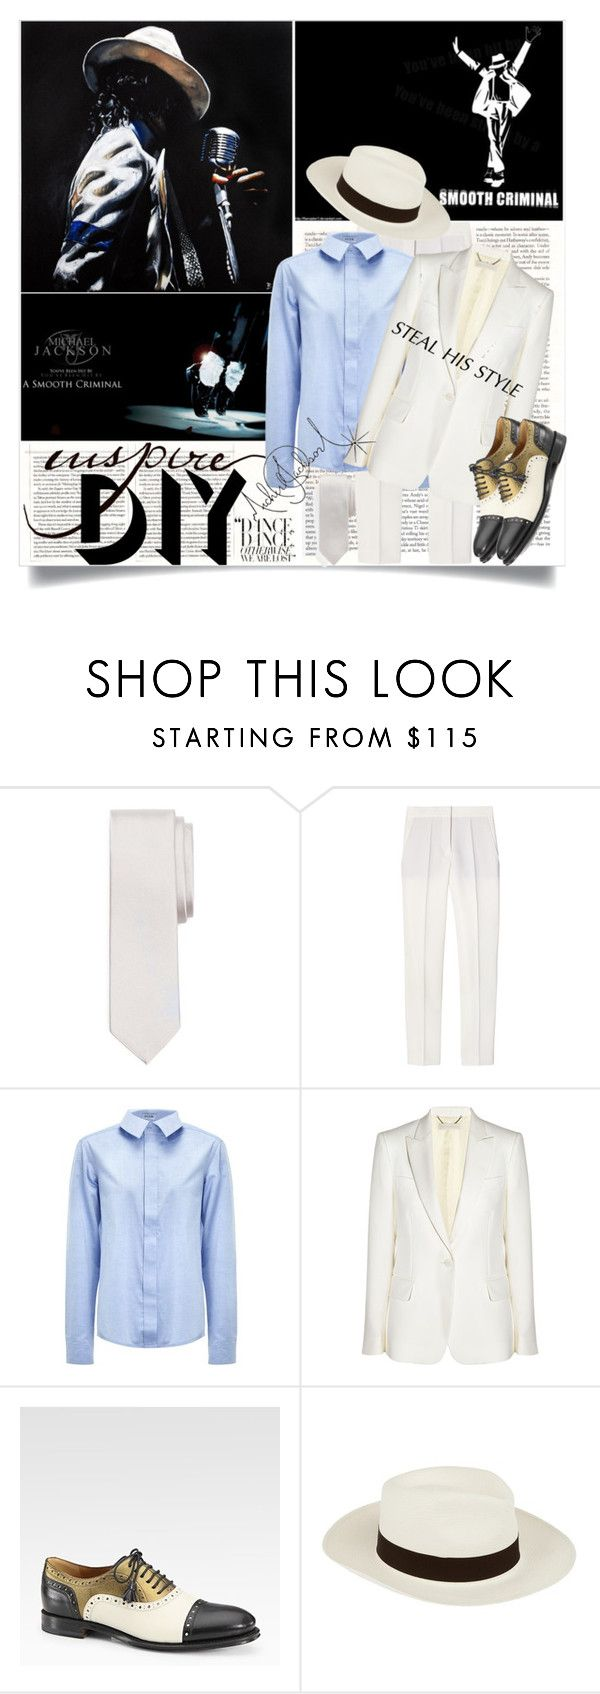 """DIY Halloween: Smooth Criminal"" by batsoulini ❤ liked on Polyvore featuring Brooks Brothers, STELLA McCARTNEY, Svek, Gucci, Barbisio, fedora hats, michael jackson, oxfords, blazers and diy halloween"